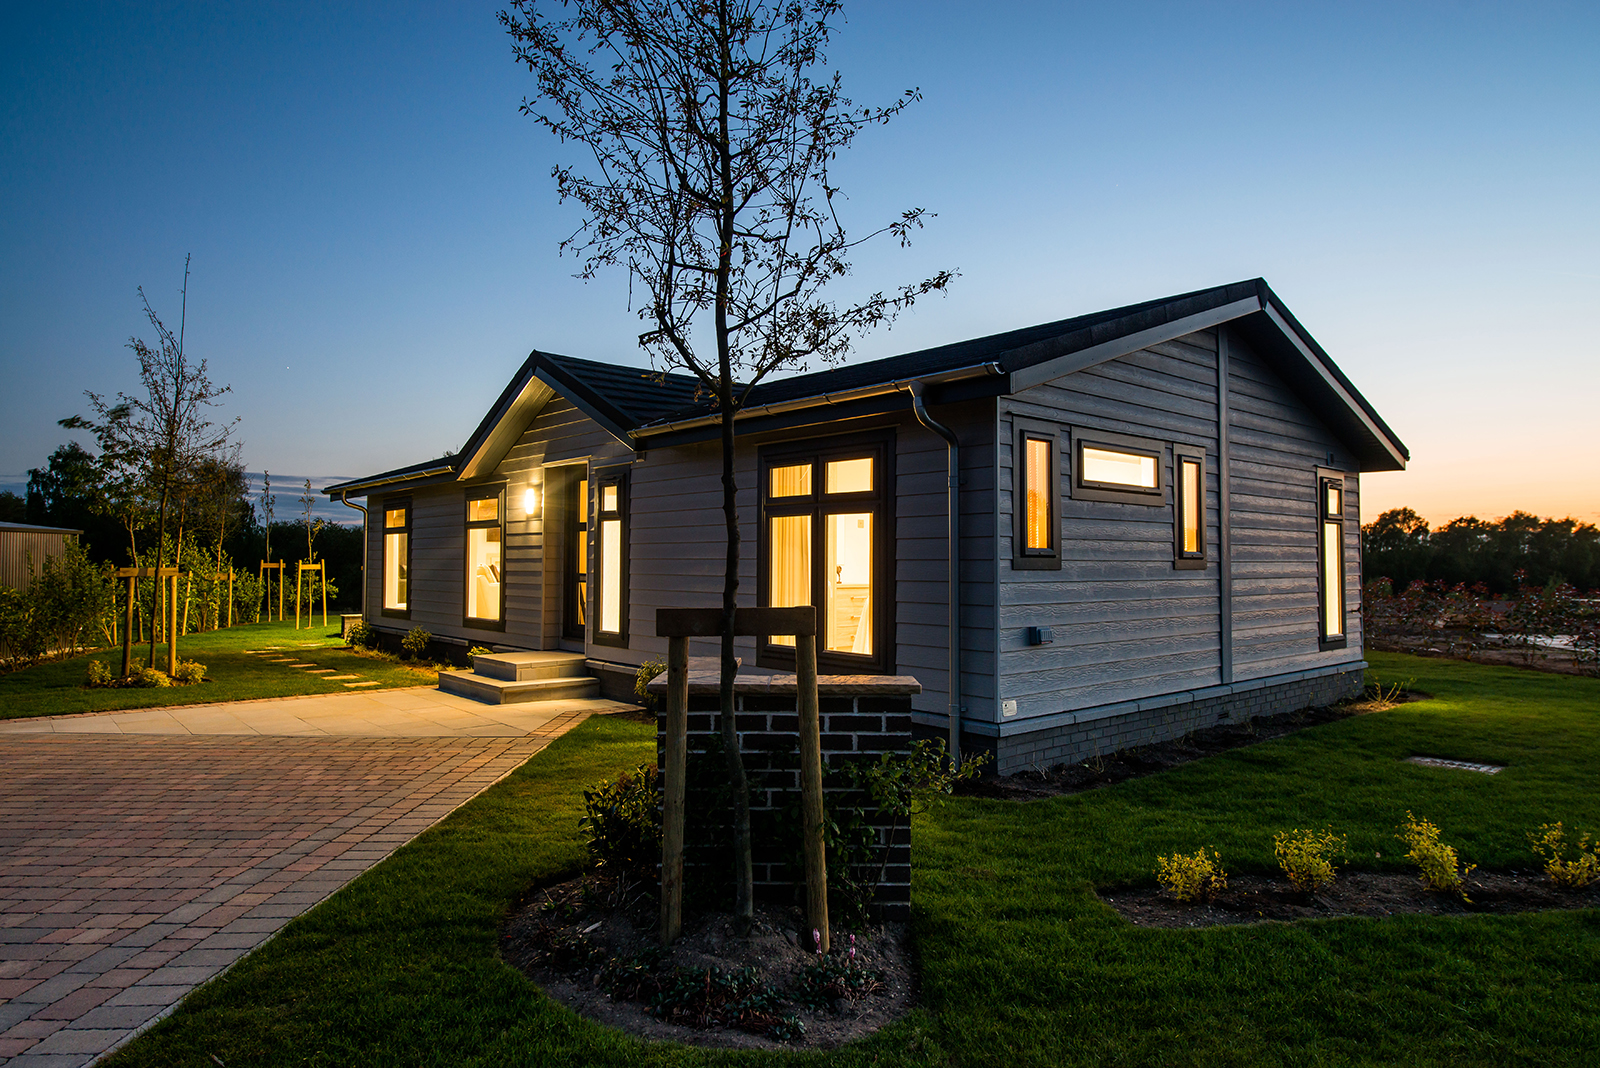 7 reasons why park home living is best for the over-55s